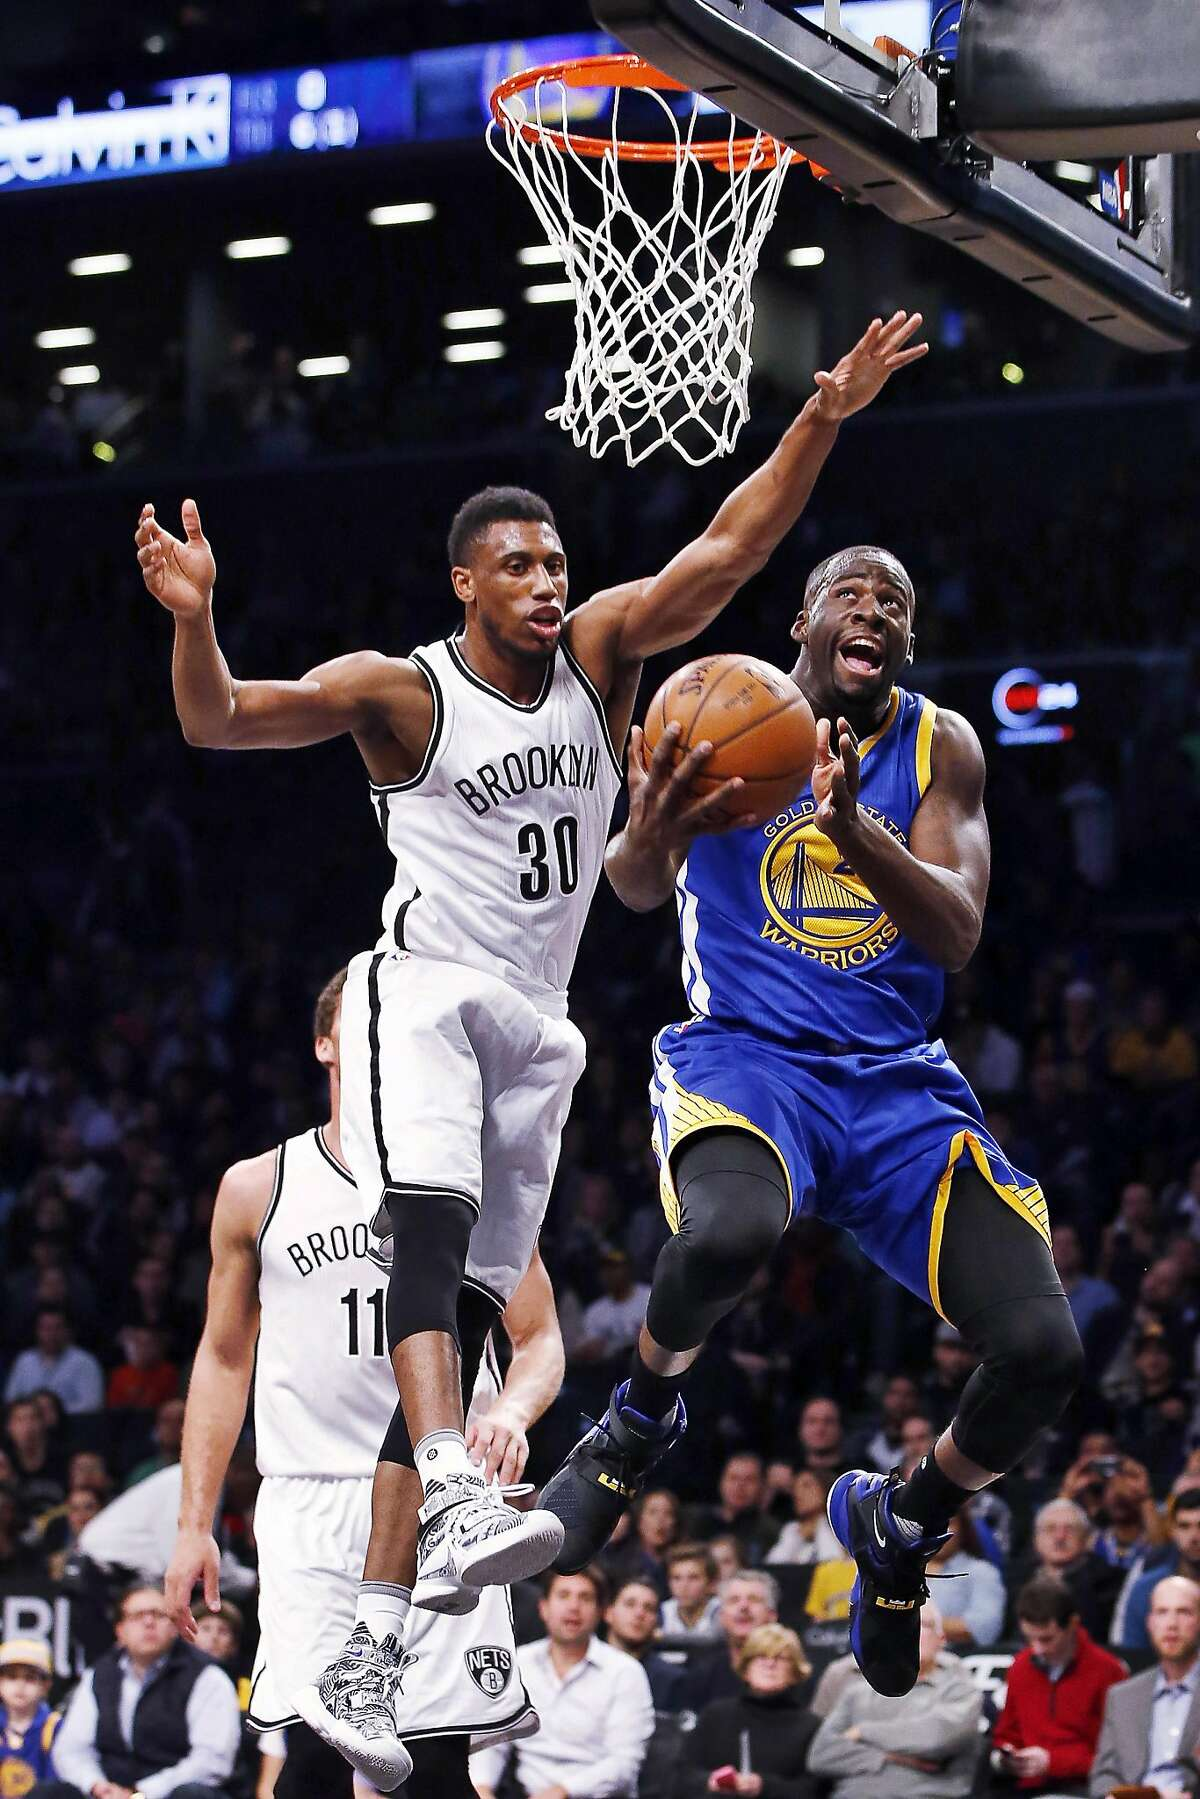 Brooklyn Nets forward Thaddeus Young (30) defends Golden State Warriors forward Draymond Green (23) in the first half of an NBA basketball game, Sunday, Dec. 6, 2015, in New York. (AP Photo/Kathy Willens)